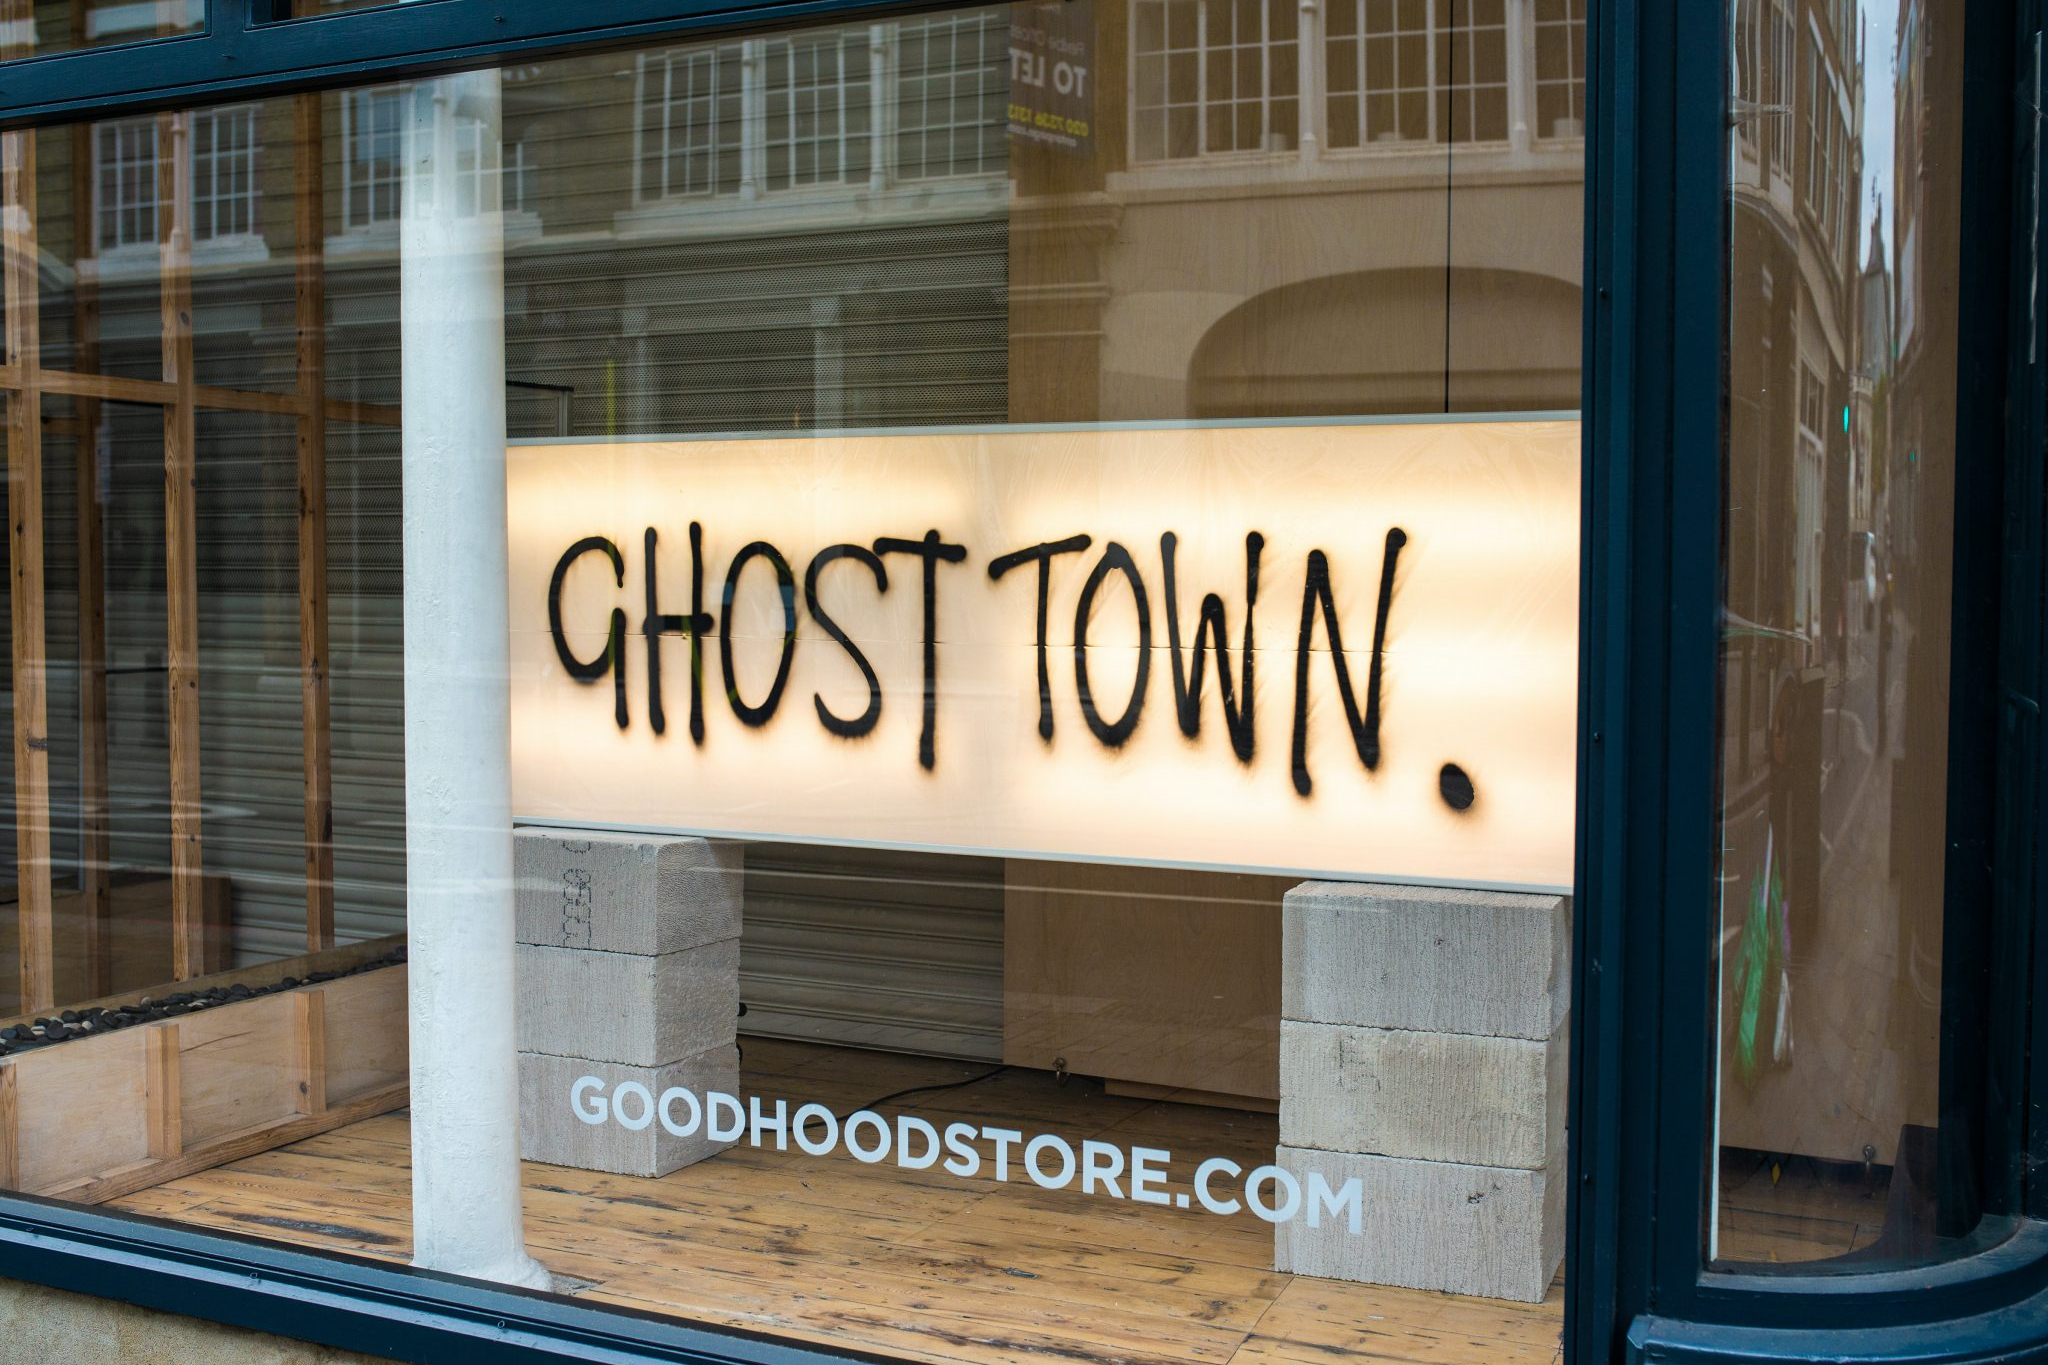 'Ghost Town' shop. Photo by Ben Garratt on Unsplash